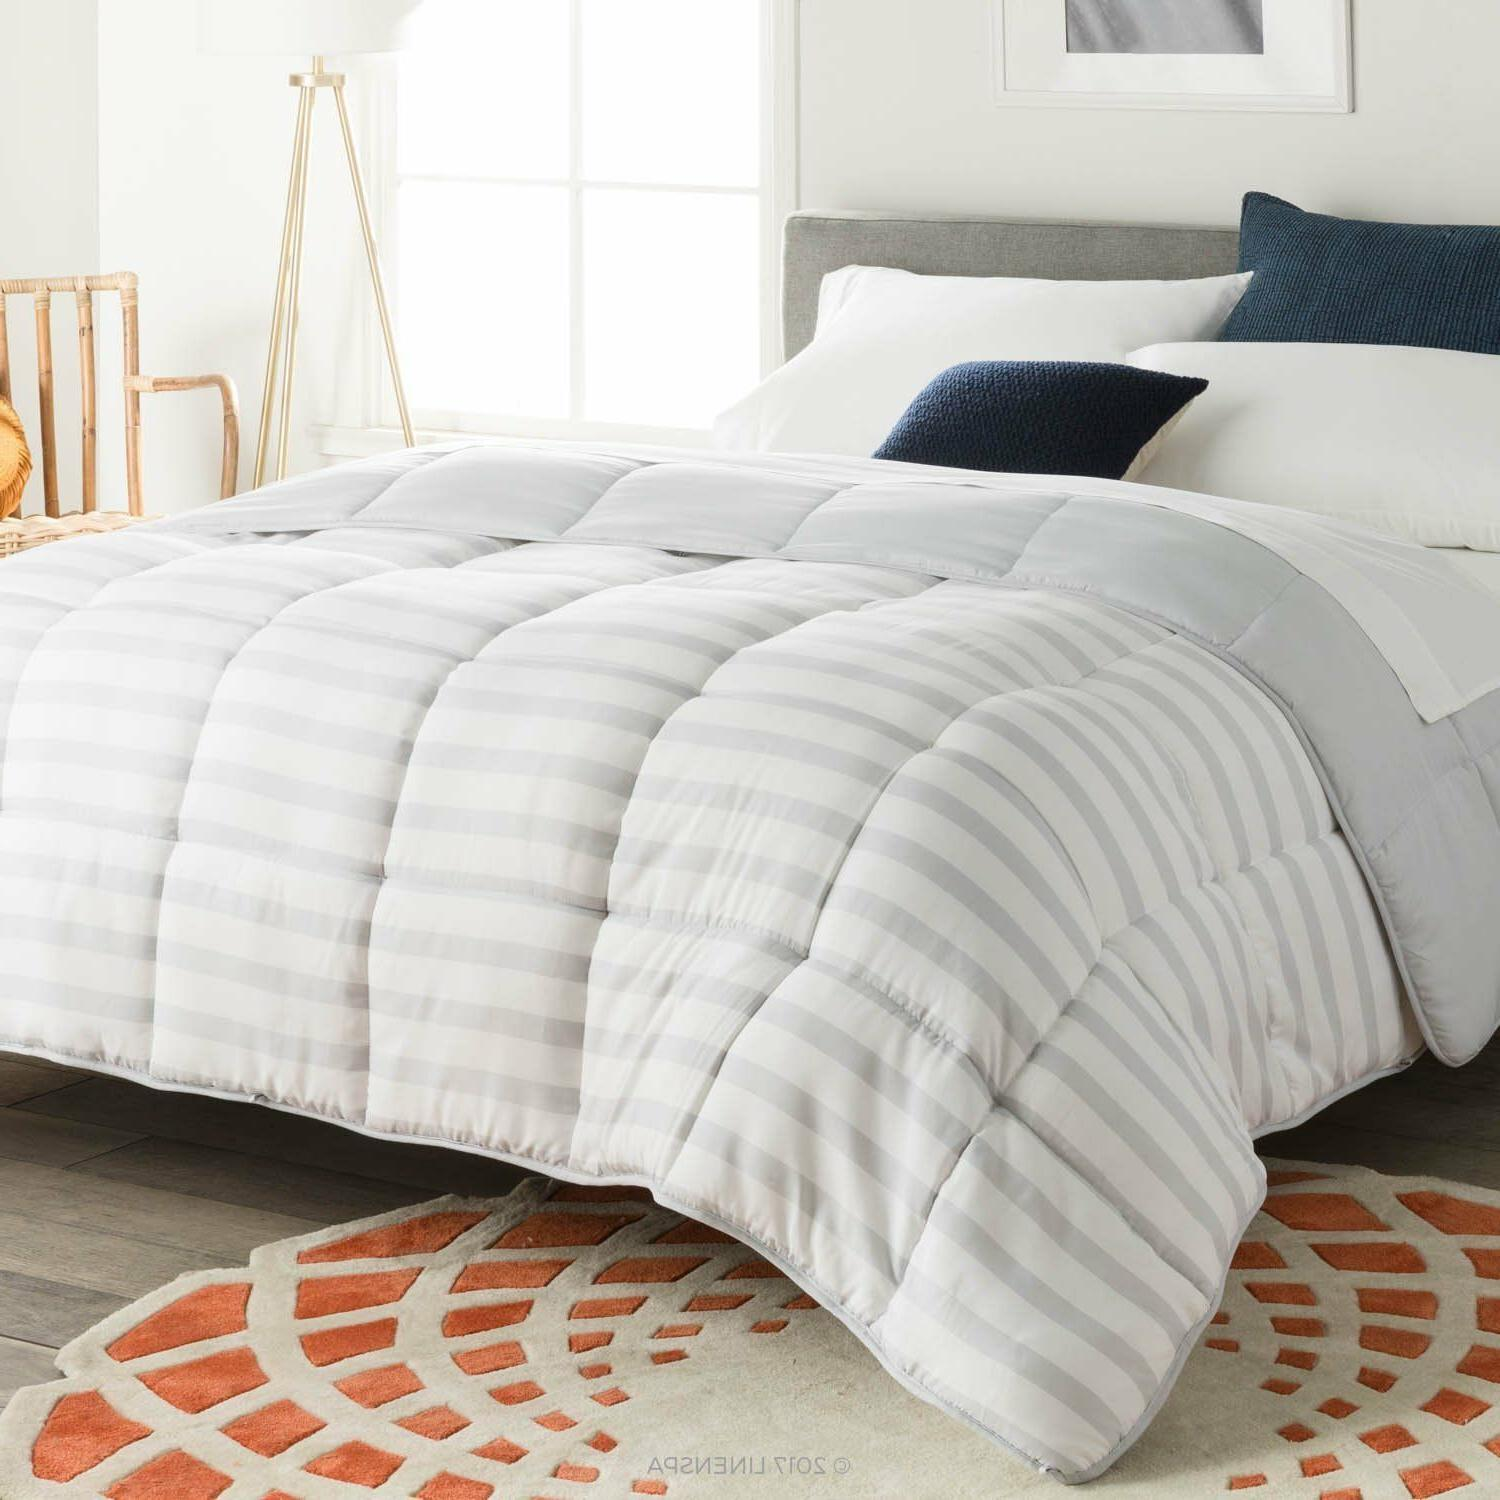 All-Season Alternative Comforter